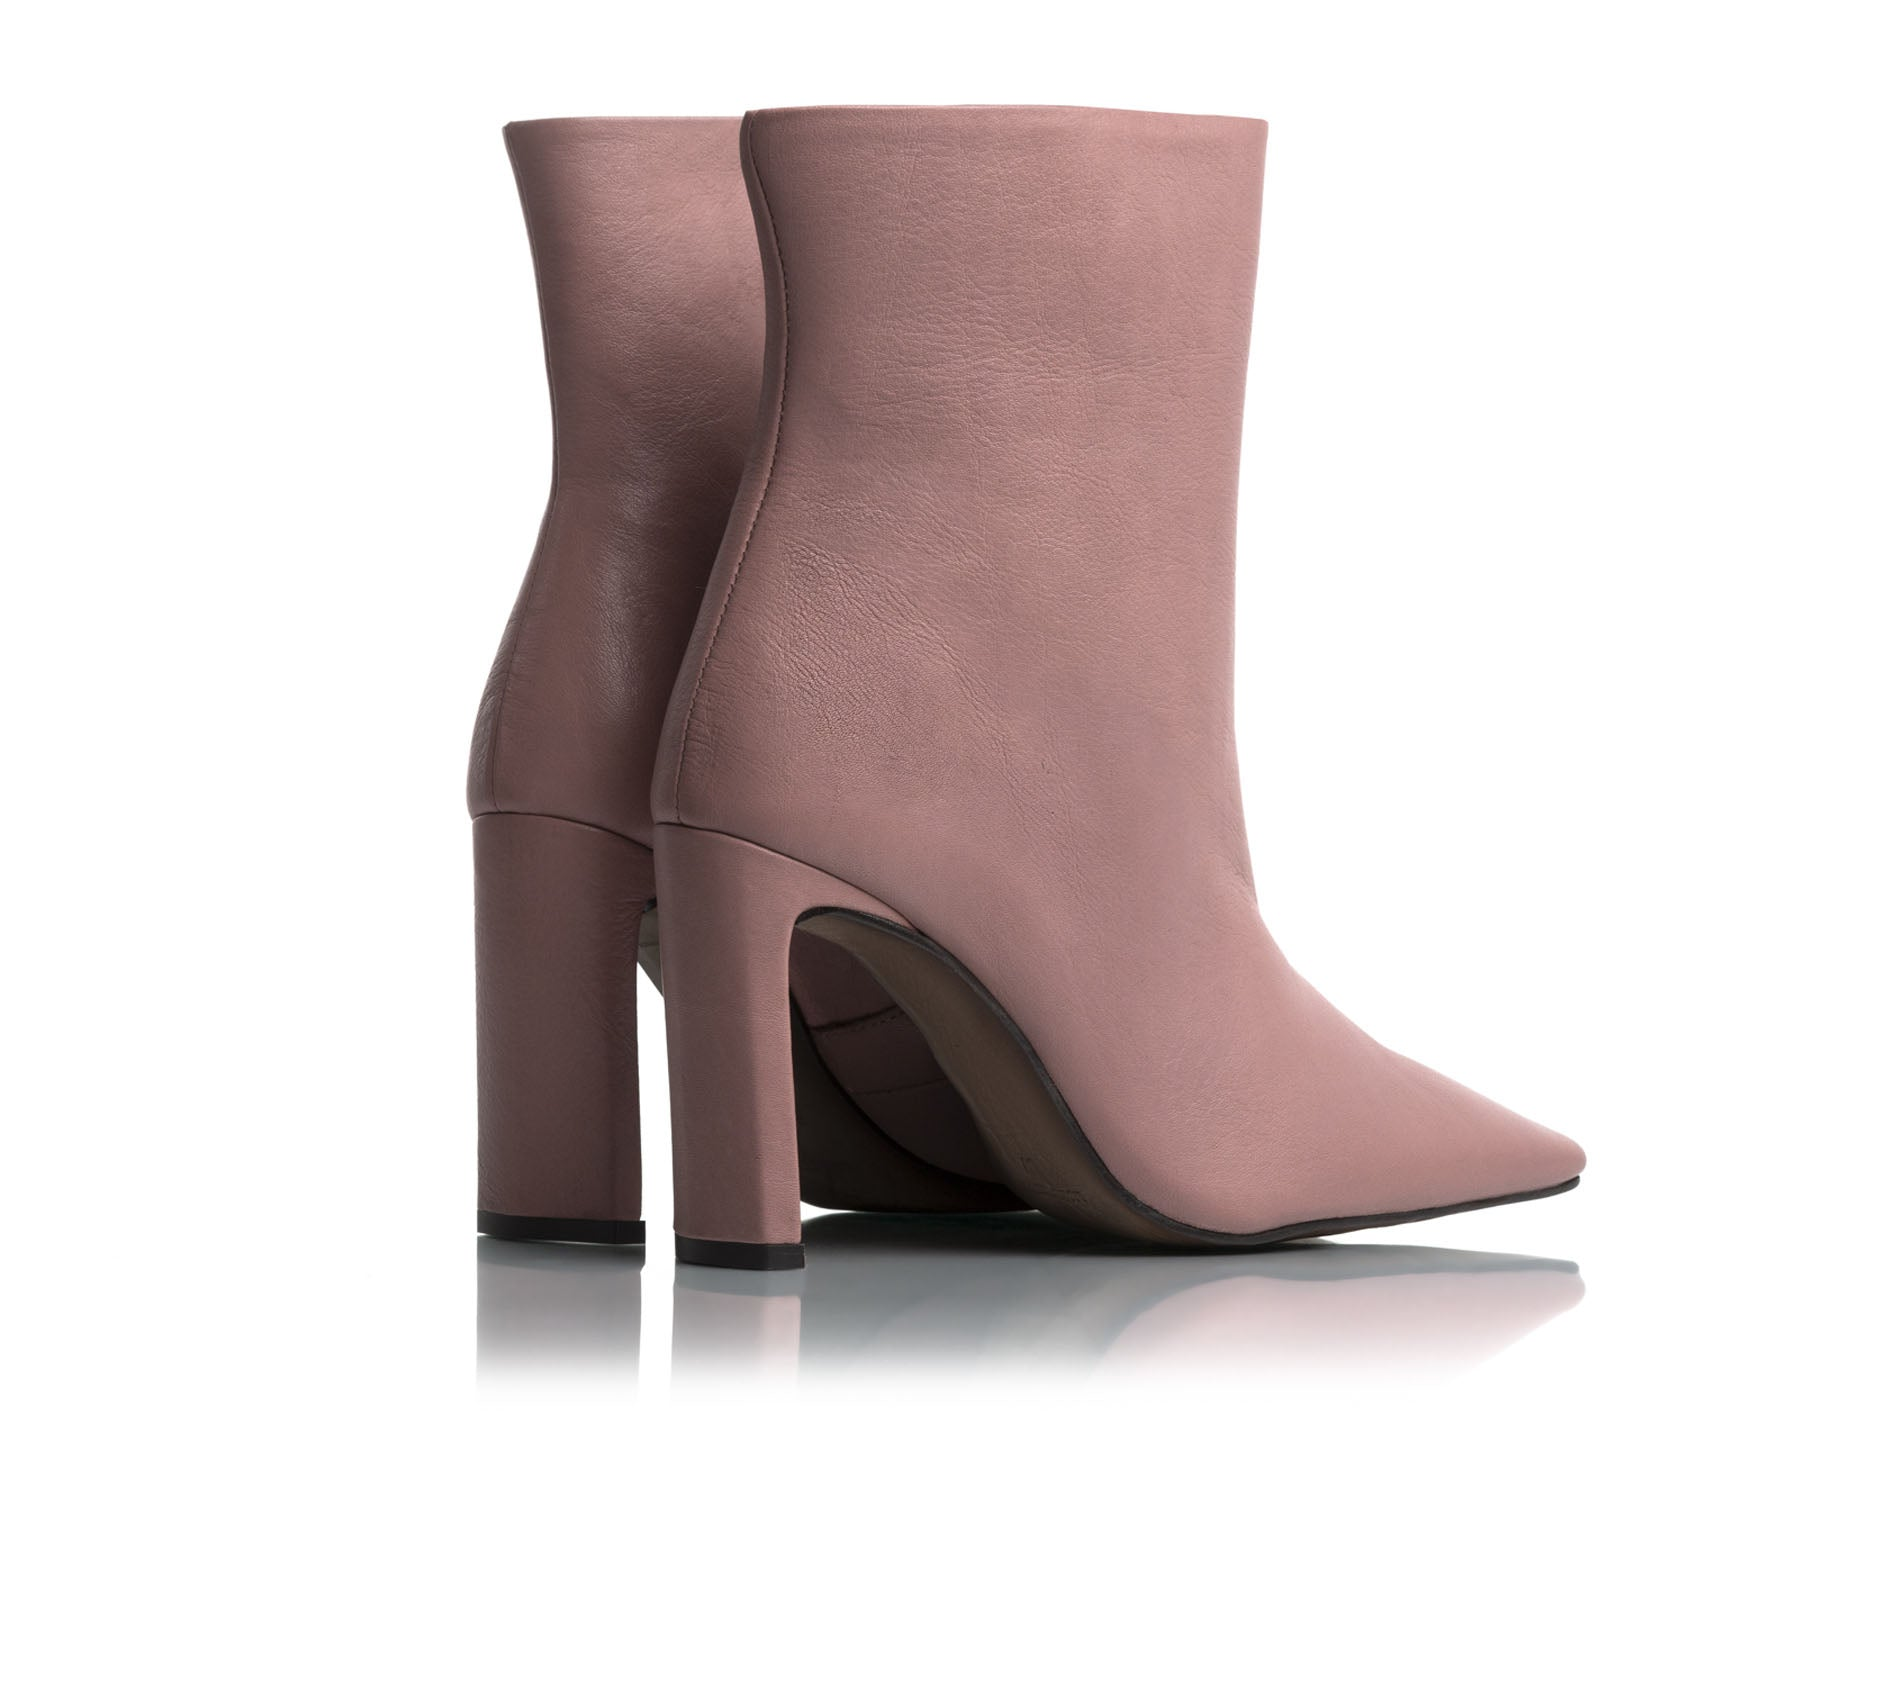 Lyon Dusty Rose Leather Ankle Boots